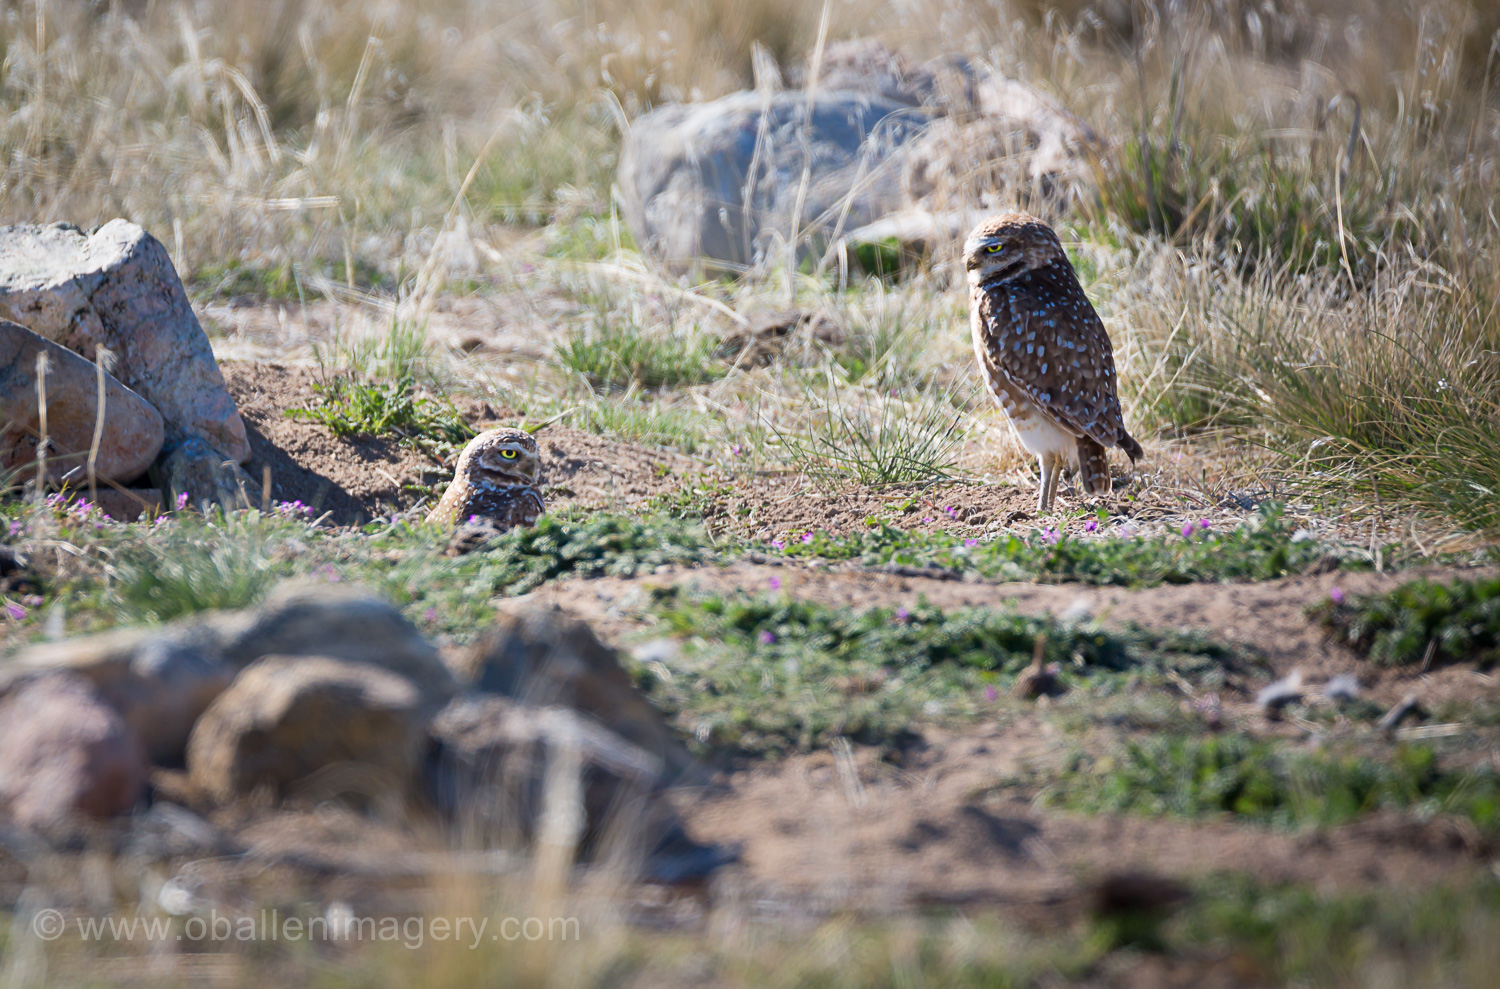 It is possible that it is a male but it was extremely attentive. Sometimes males aren't quite that watchful.